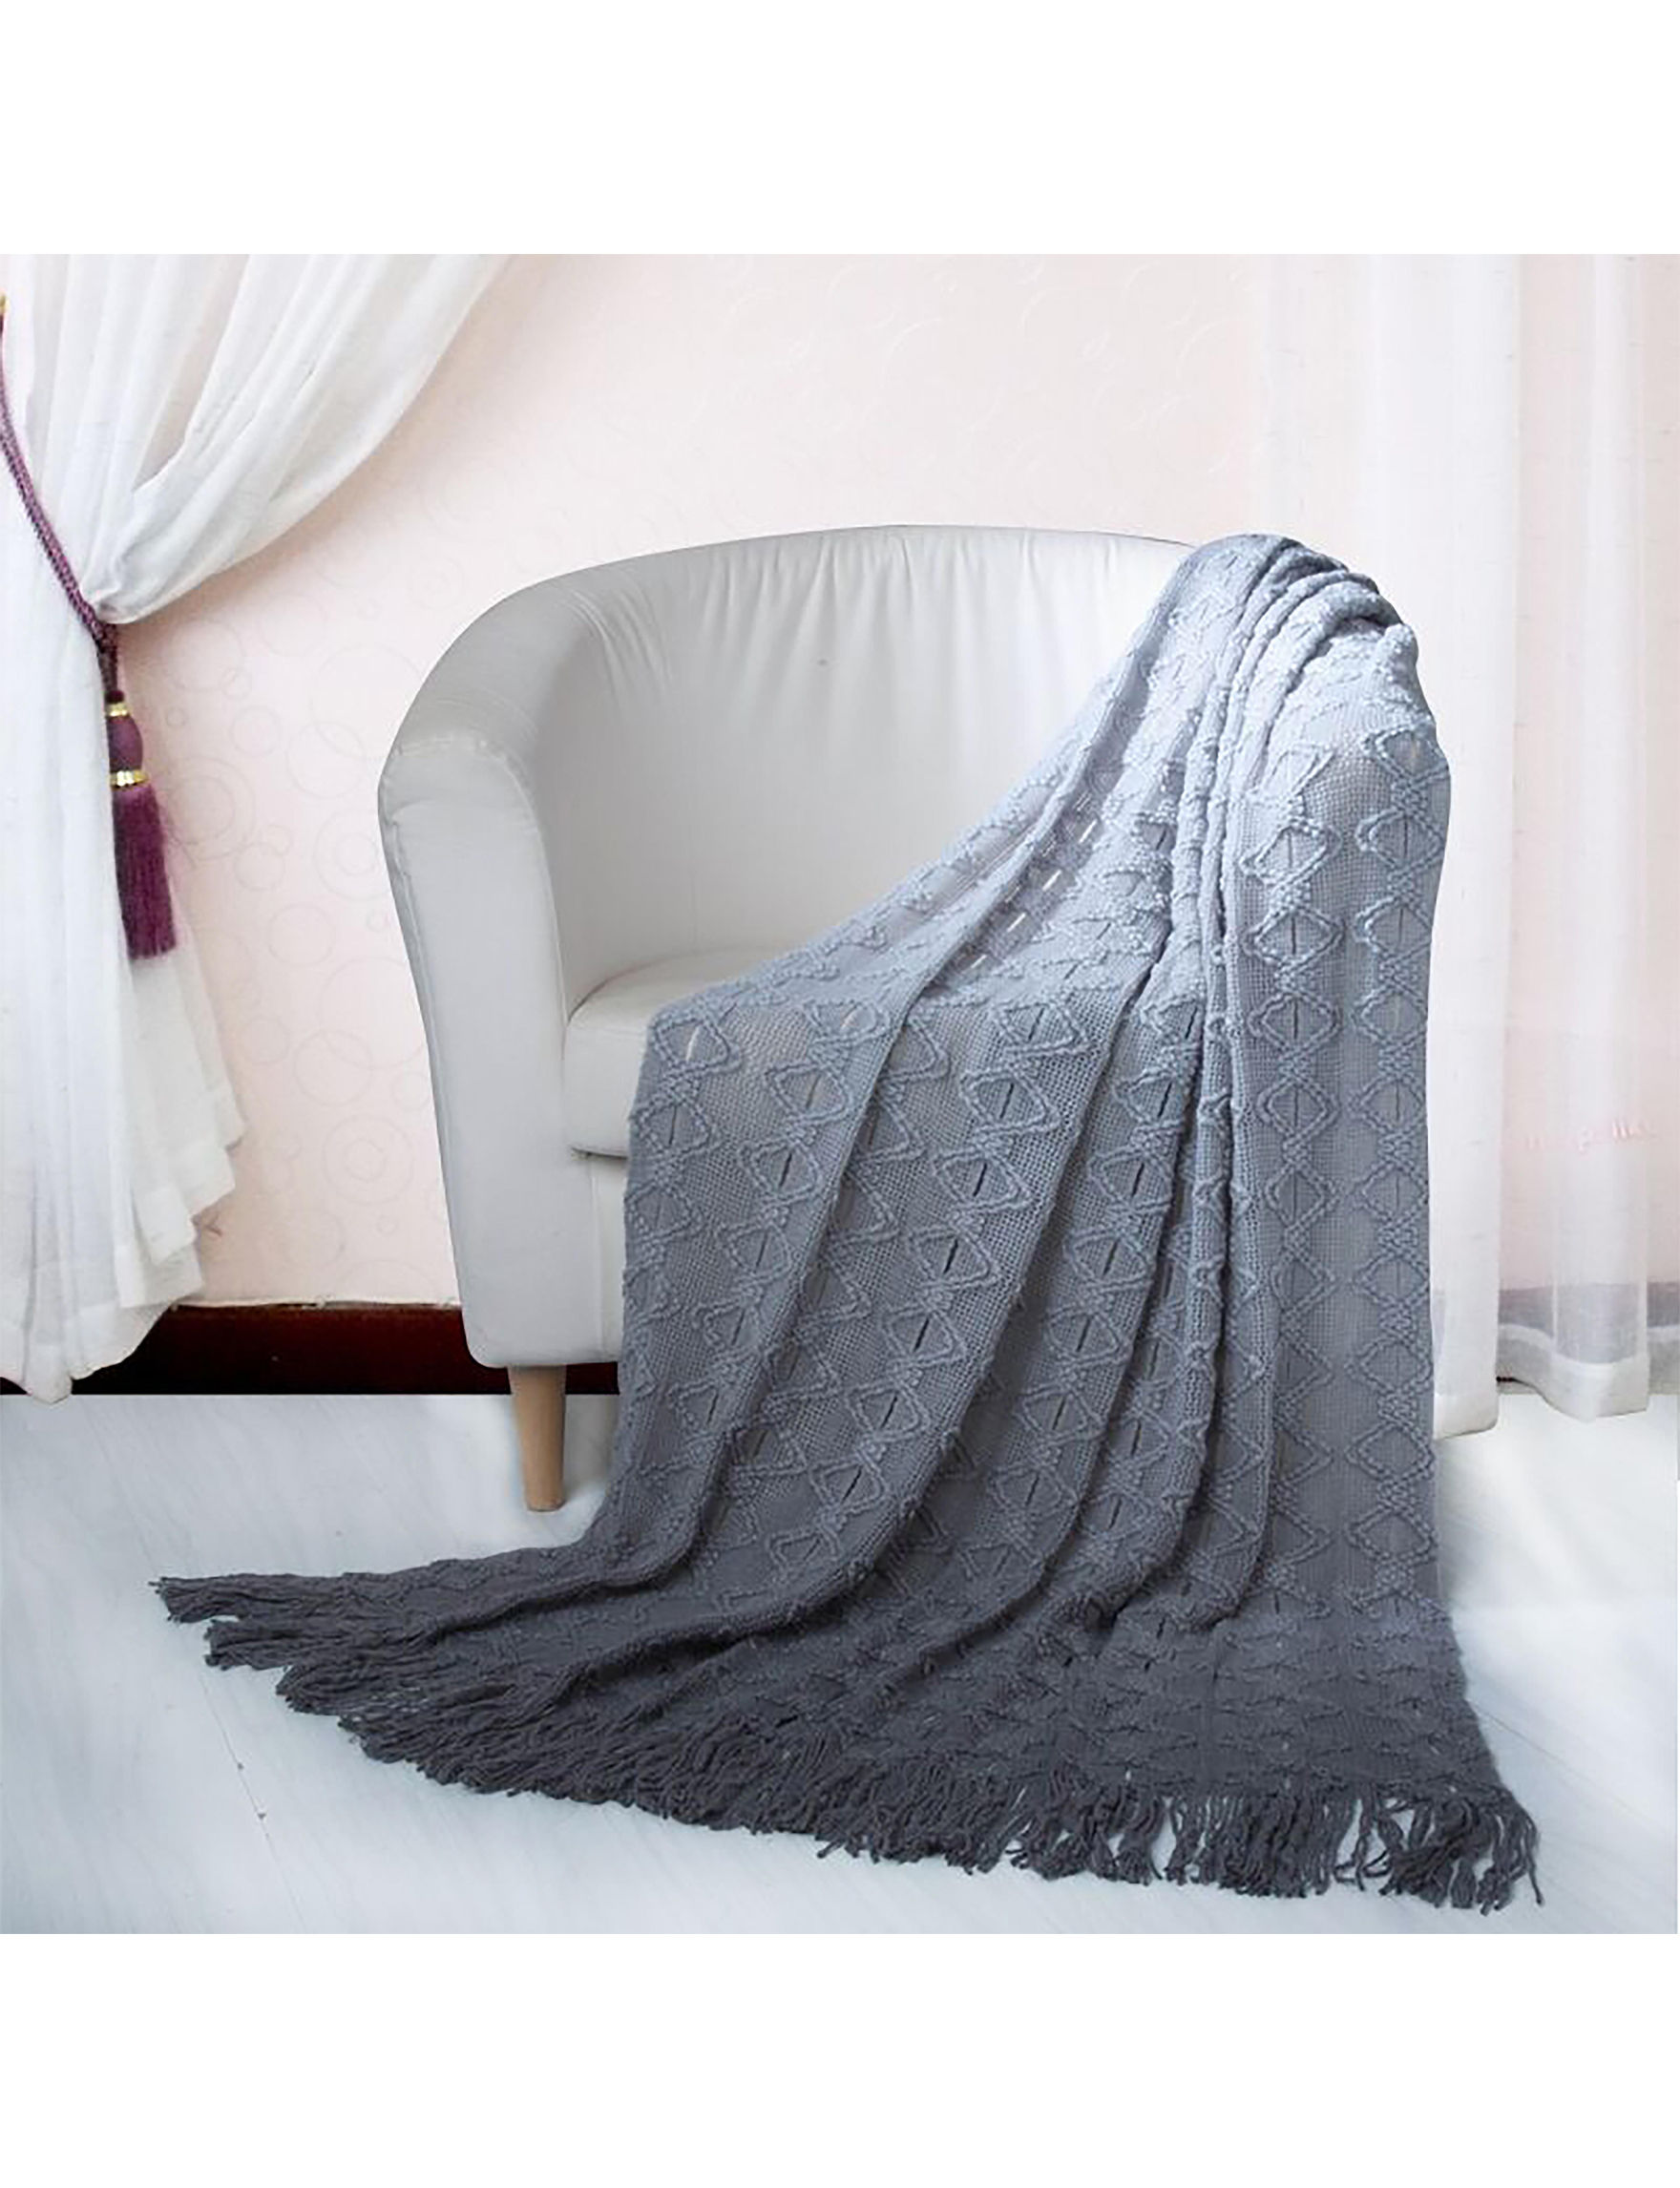 Chic Home Design Grey Blankets & Throws